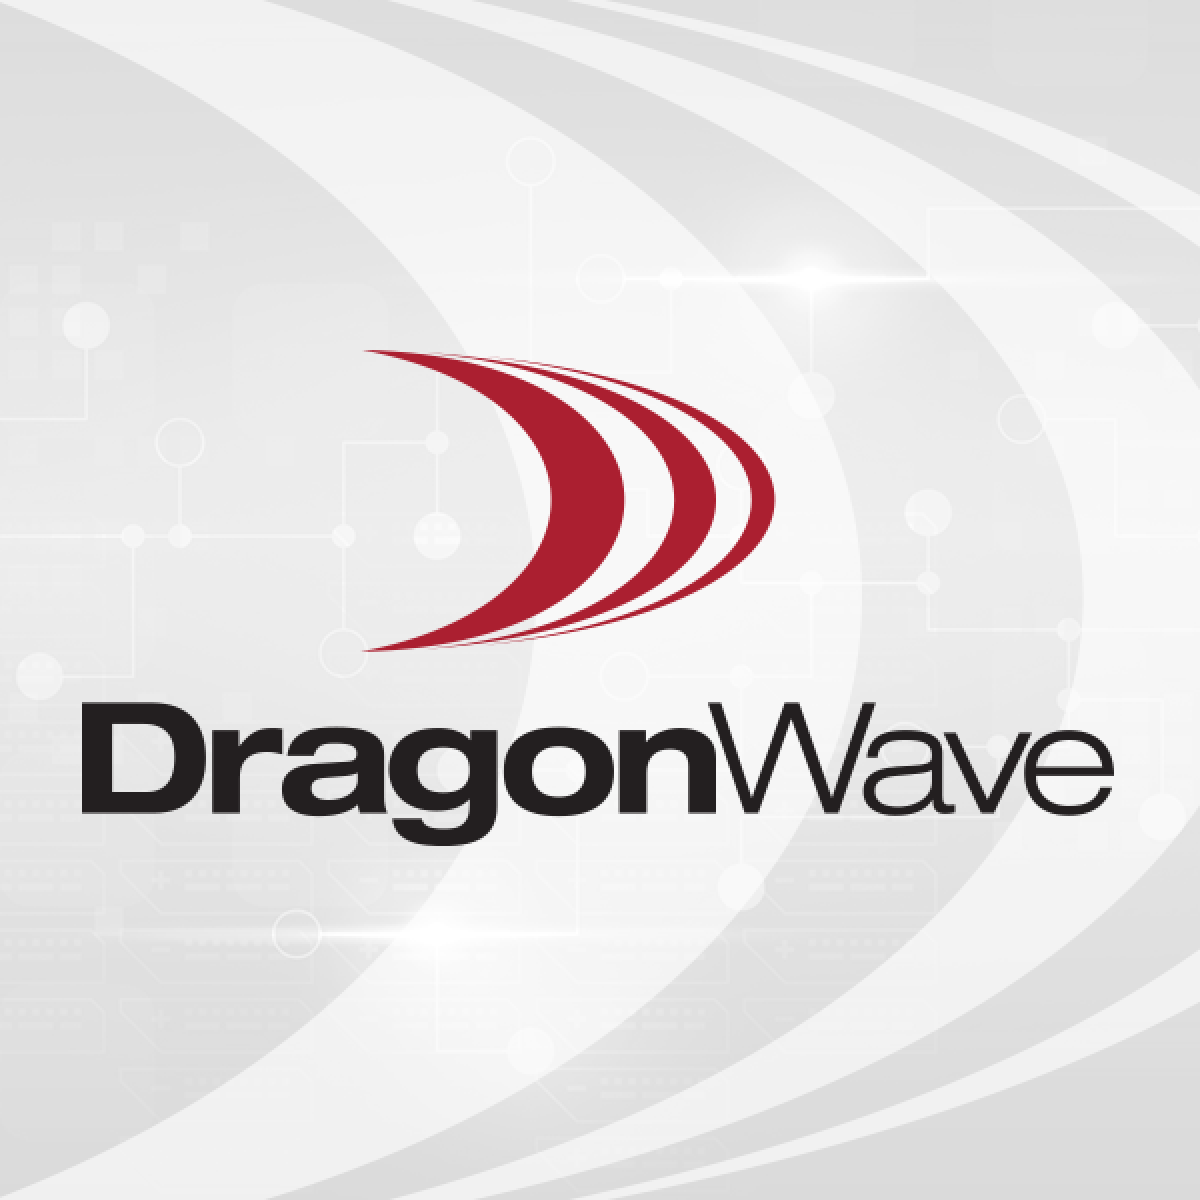 DragonWave Business Operations relaunch with Strategic Shift